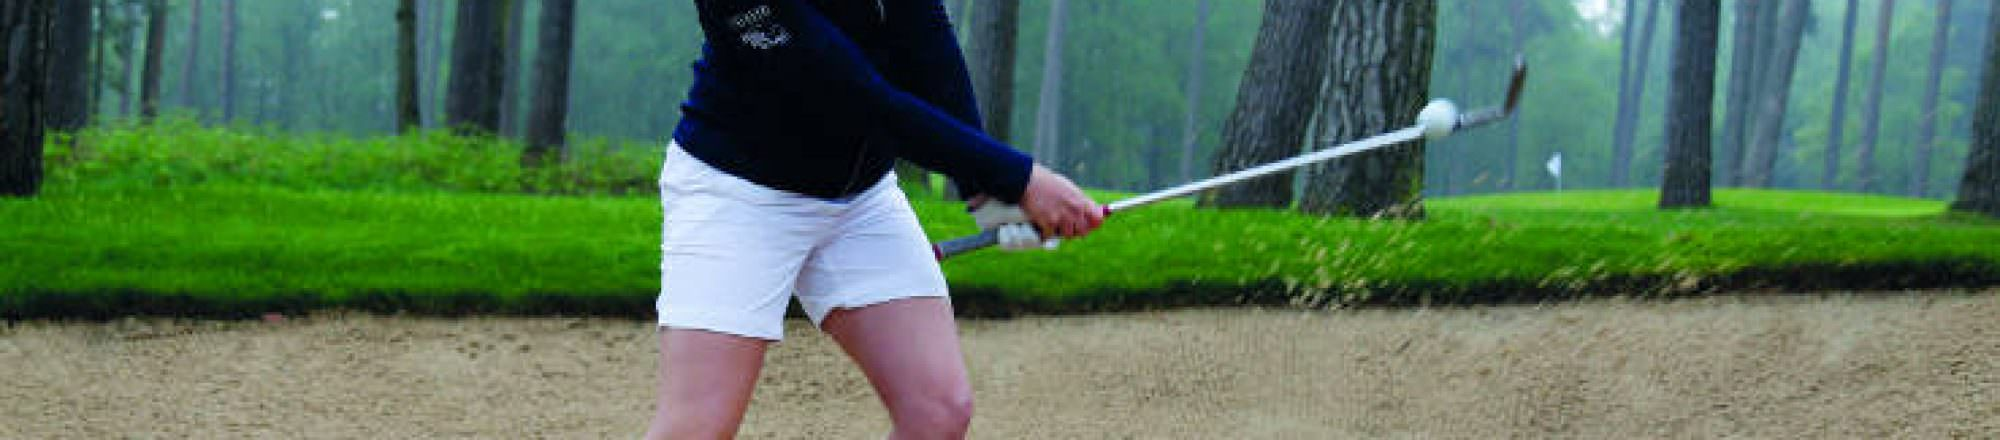 Short game special with Charley Hull: Stay wide & solid